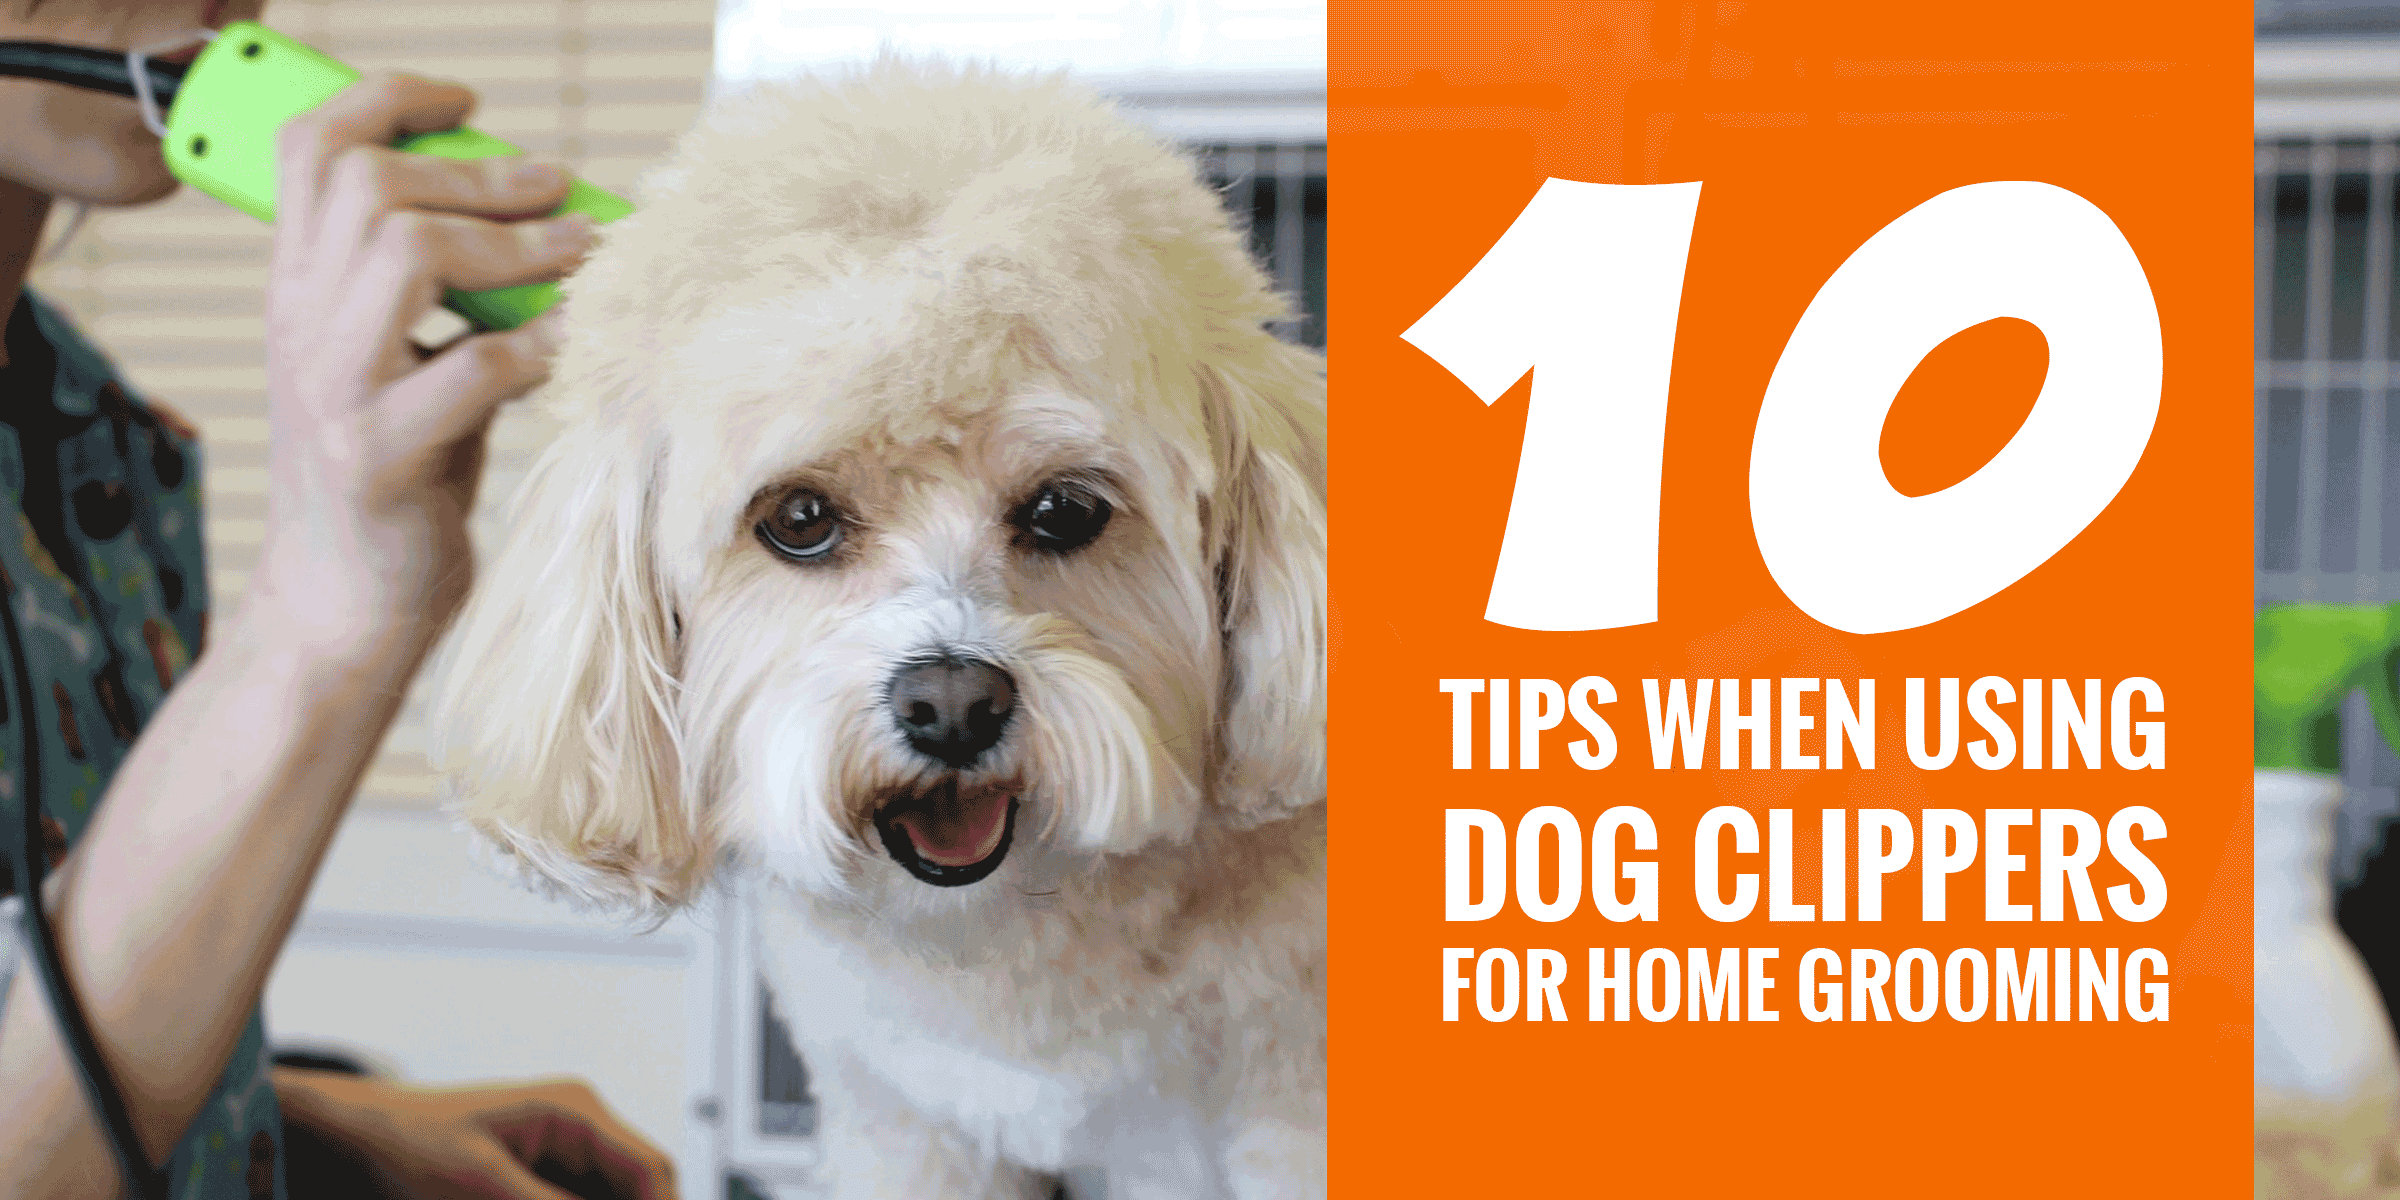 10 Super Tips For Using Dog Clippers For Home Grooming